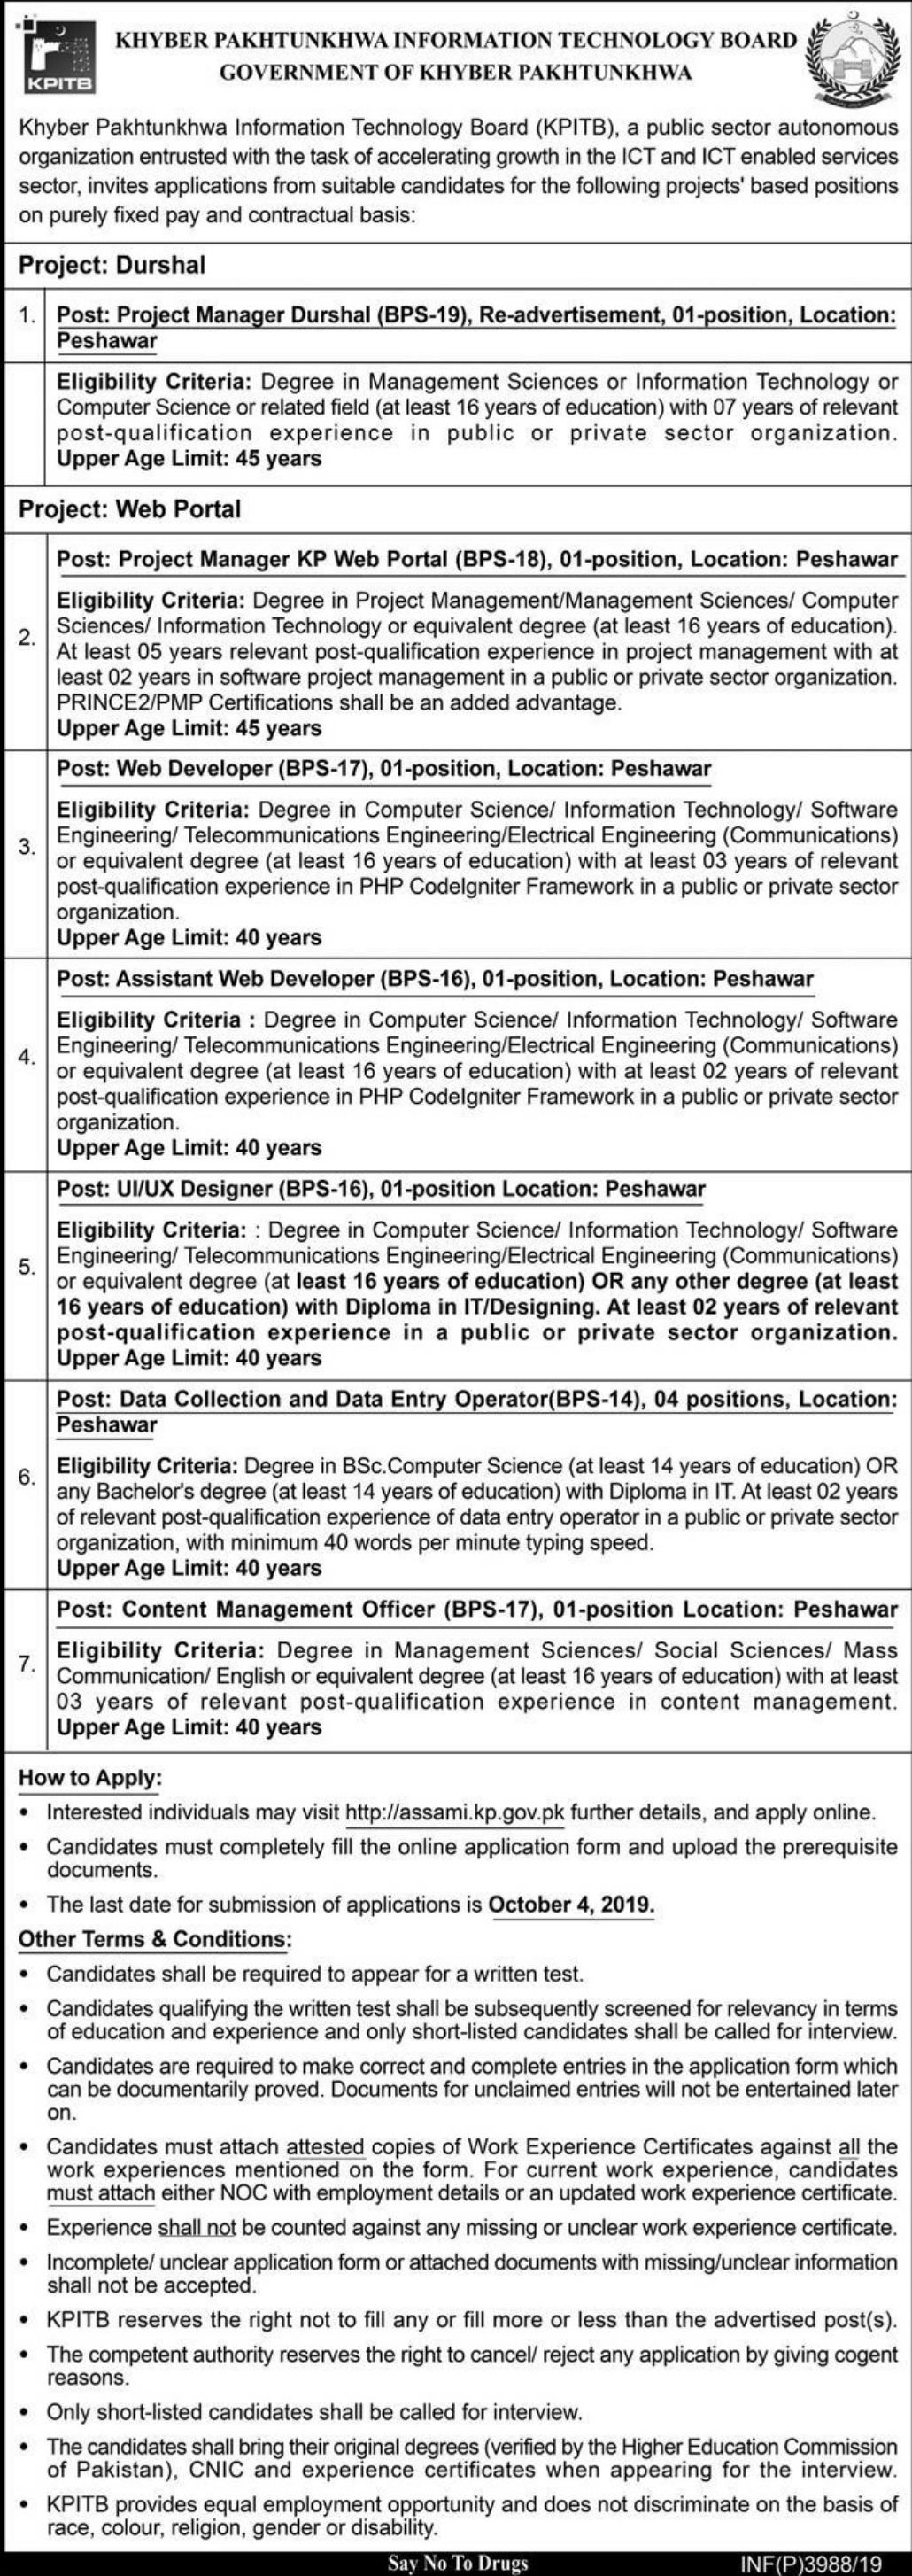 Khyber Pakhtunkhwa Information Technology Board KPITB Jobs 2019 Online Apply